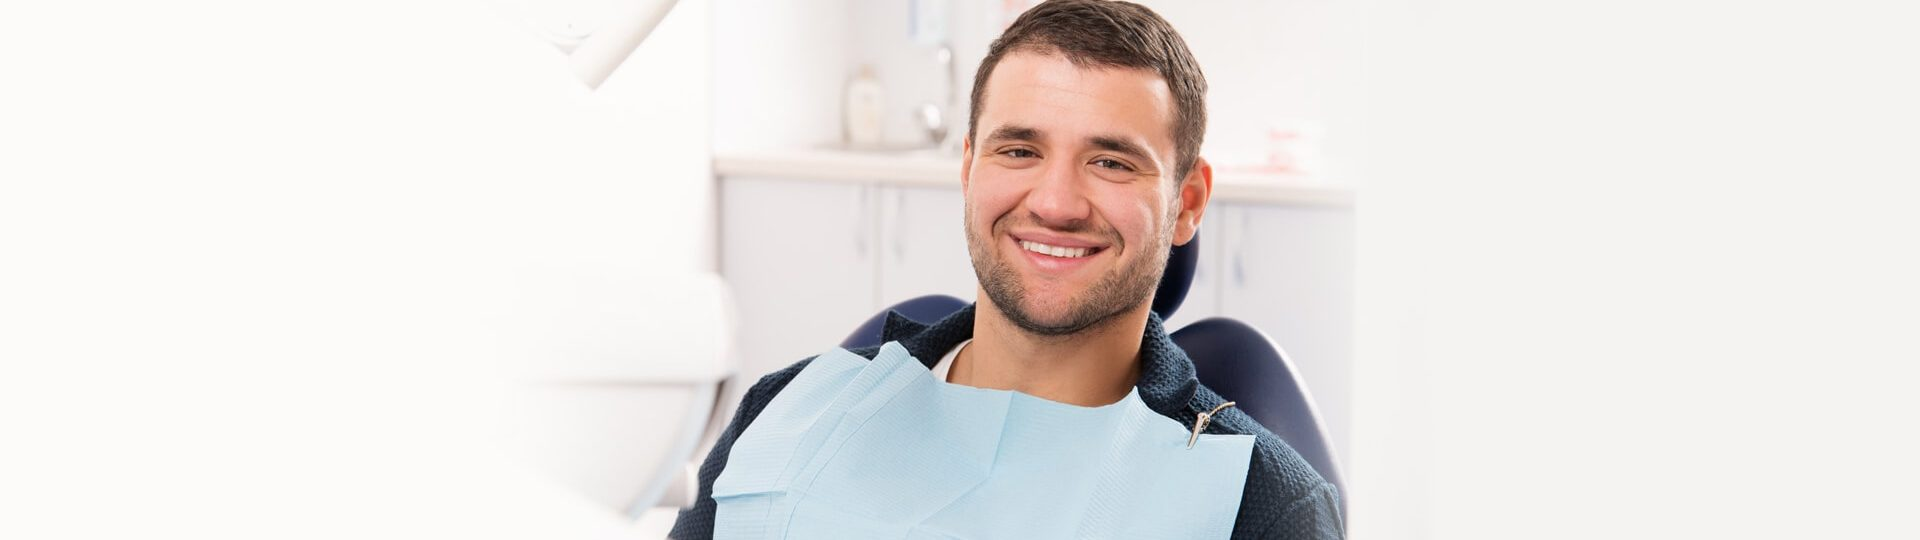 Make Your Teeth Whiter And Get Your Beautiful Smile Back